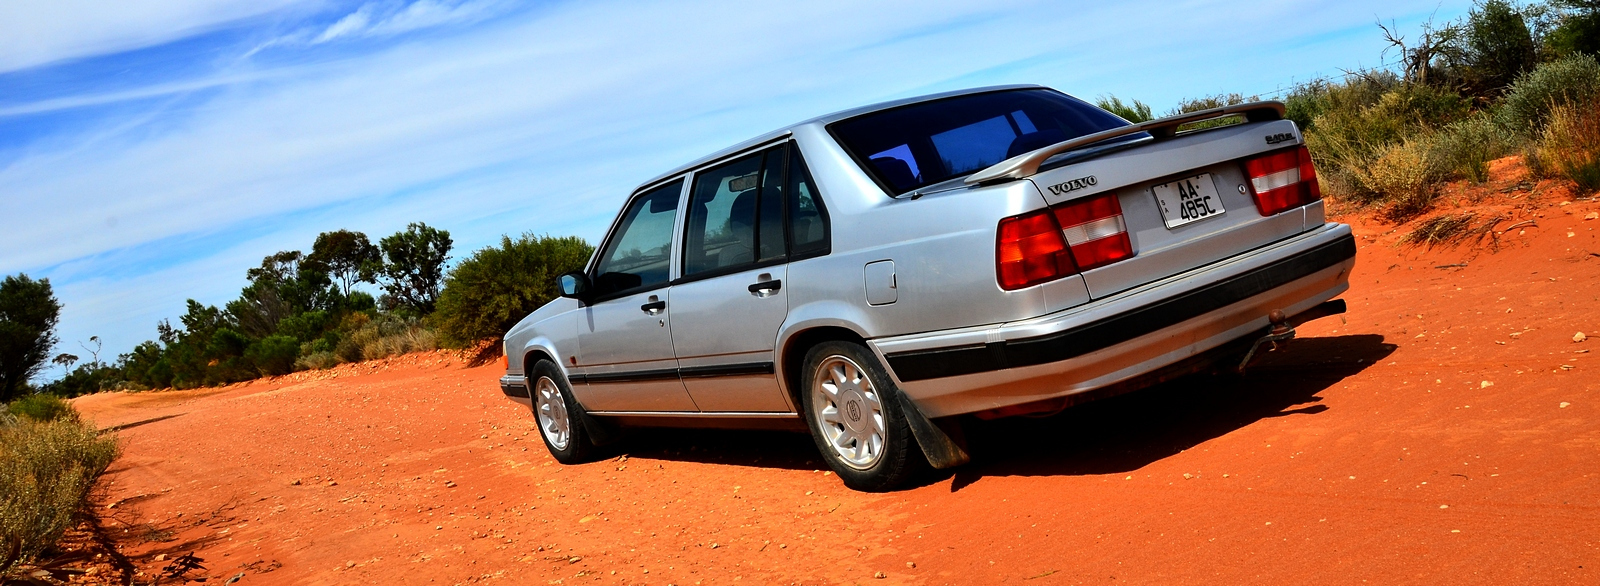 Whats With The 940 Spoiler Volvo Owners Club Forum